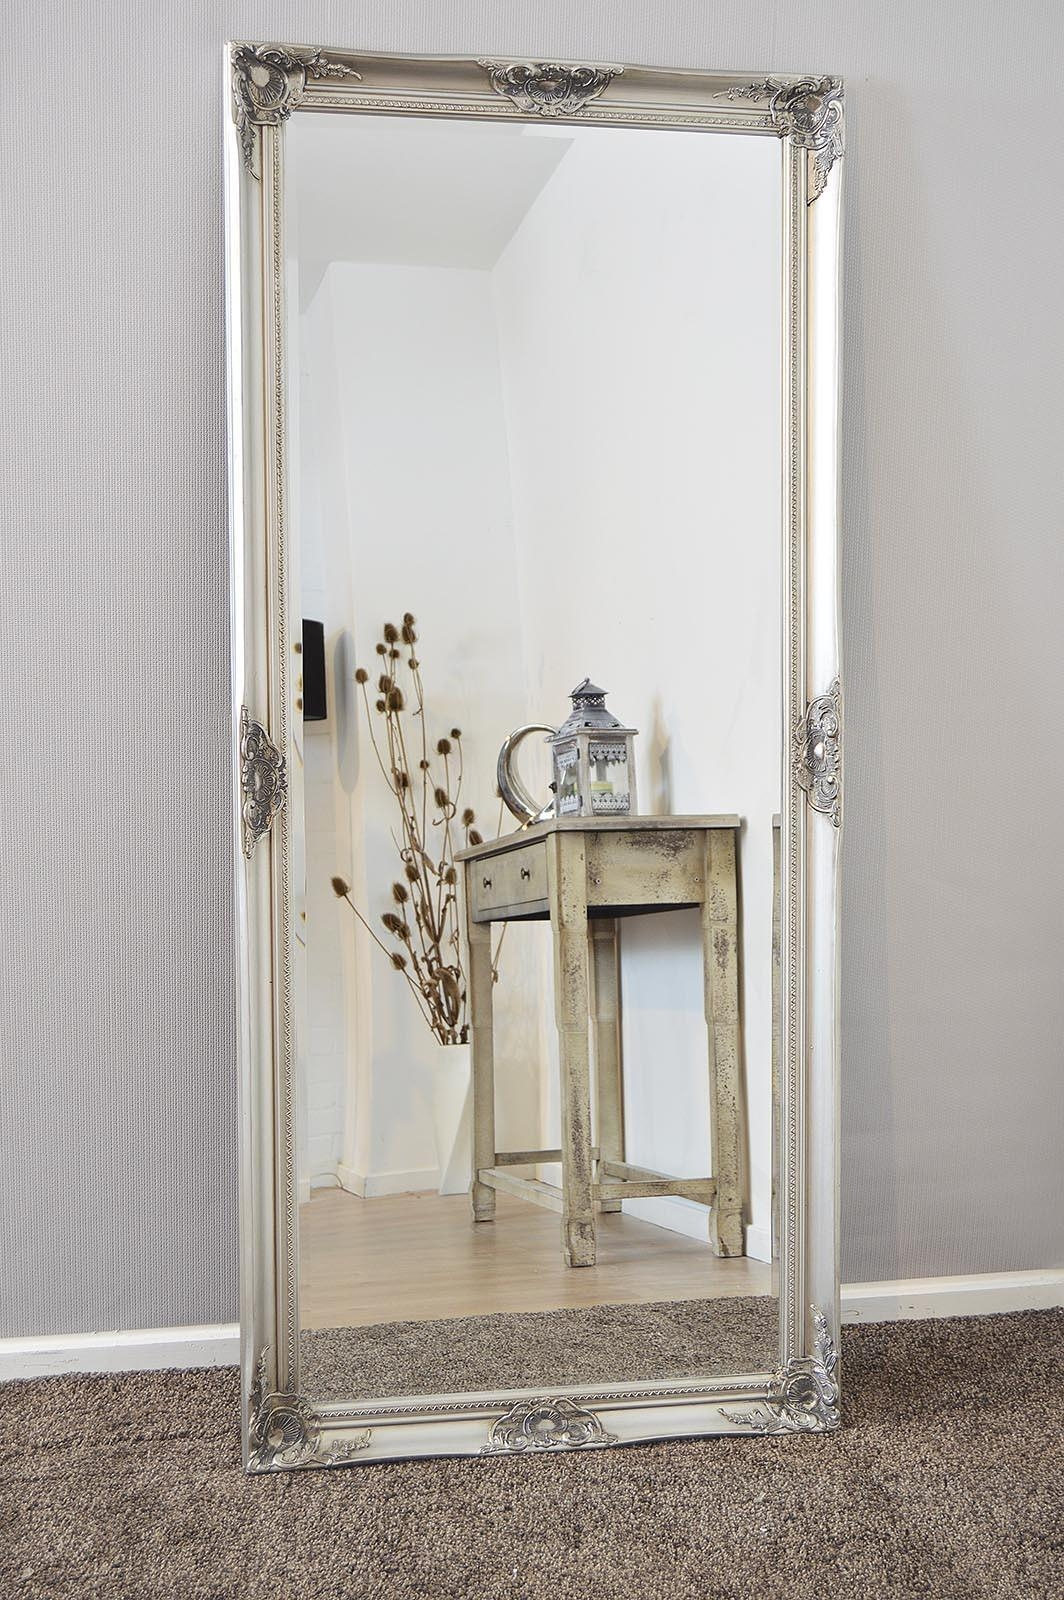 Big Vintage Floor Mirrors | Vanity Decoration Intended For Big Silver Mirror (Image 5 of 20)